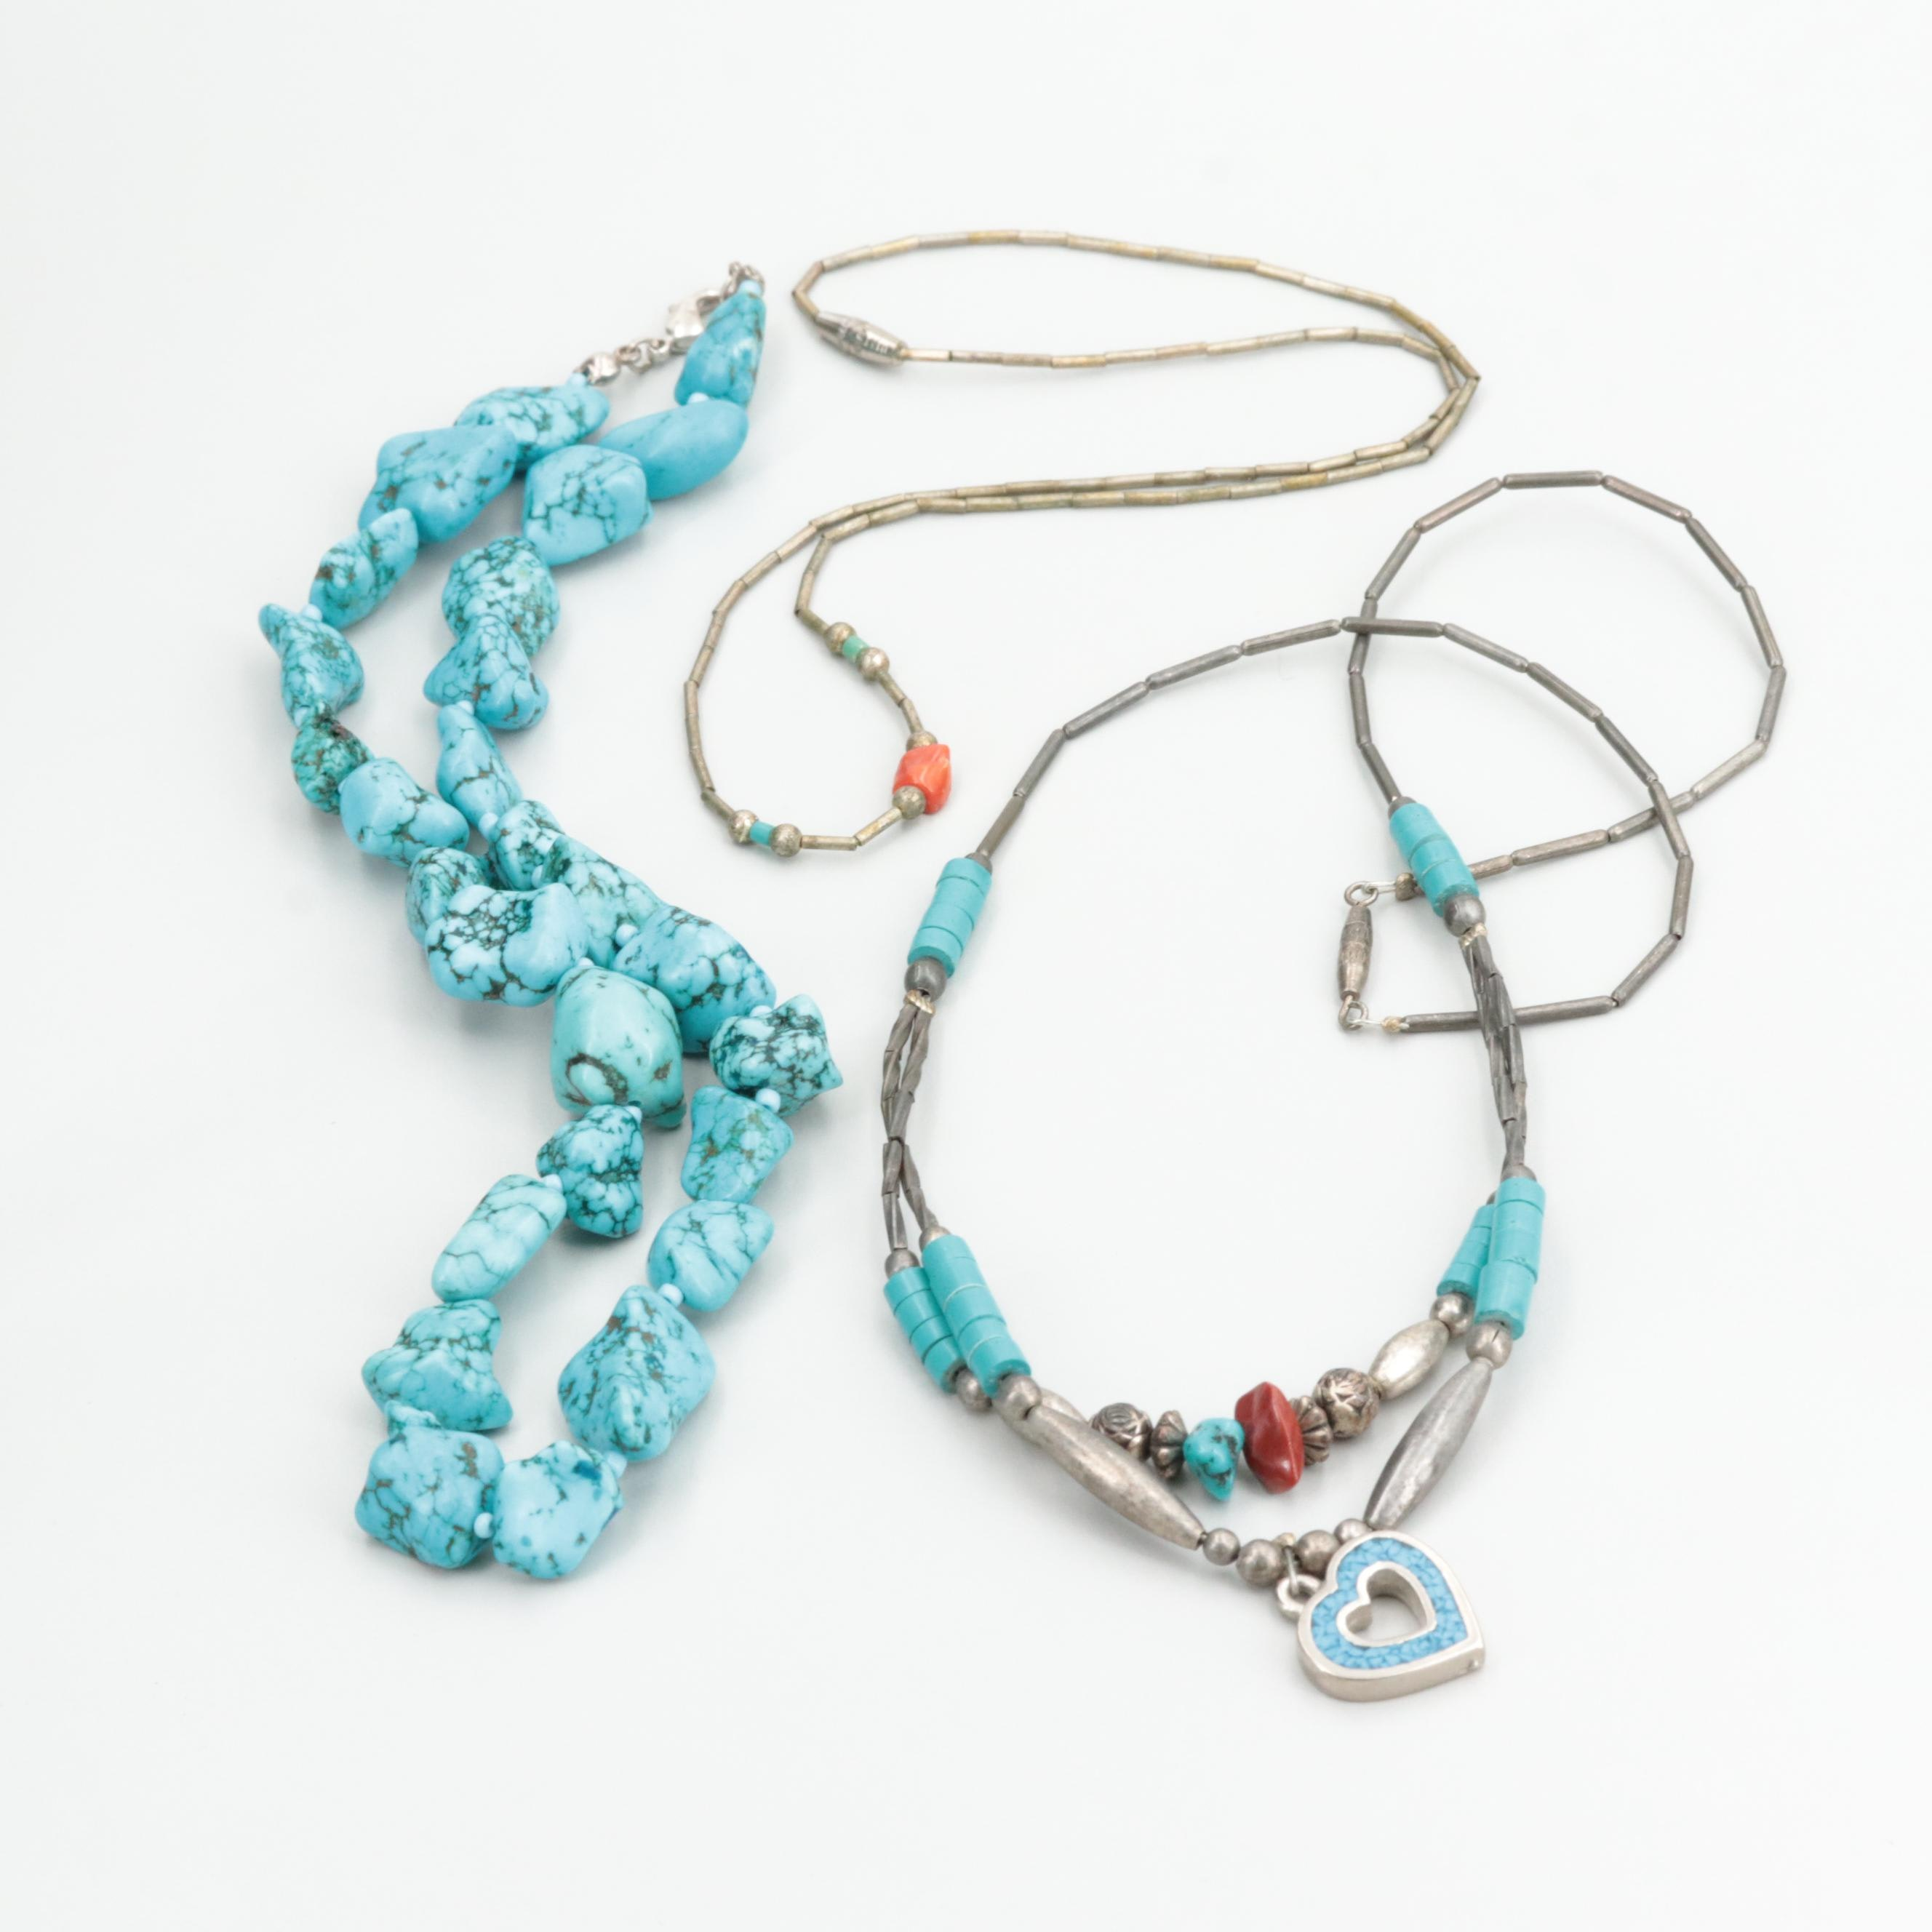 Southwestern Silver Tone Necklaces with Coral, Turquoise and Howlite